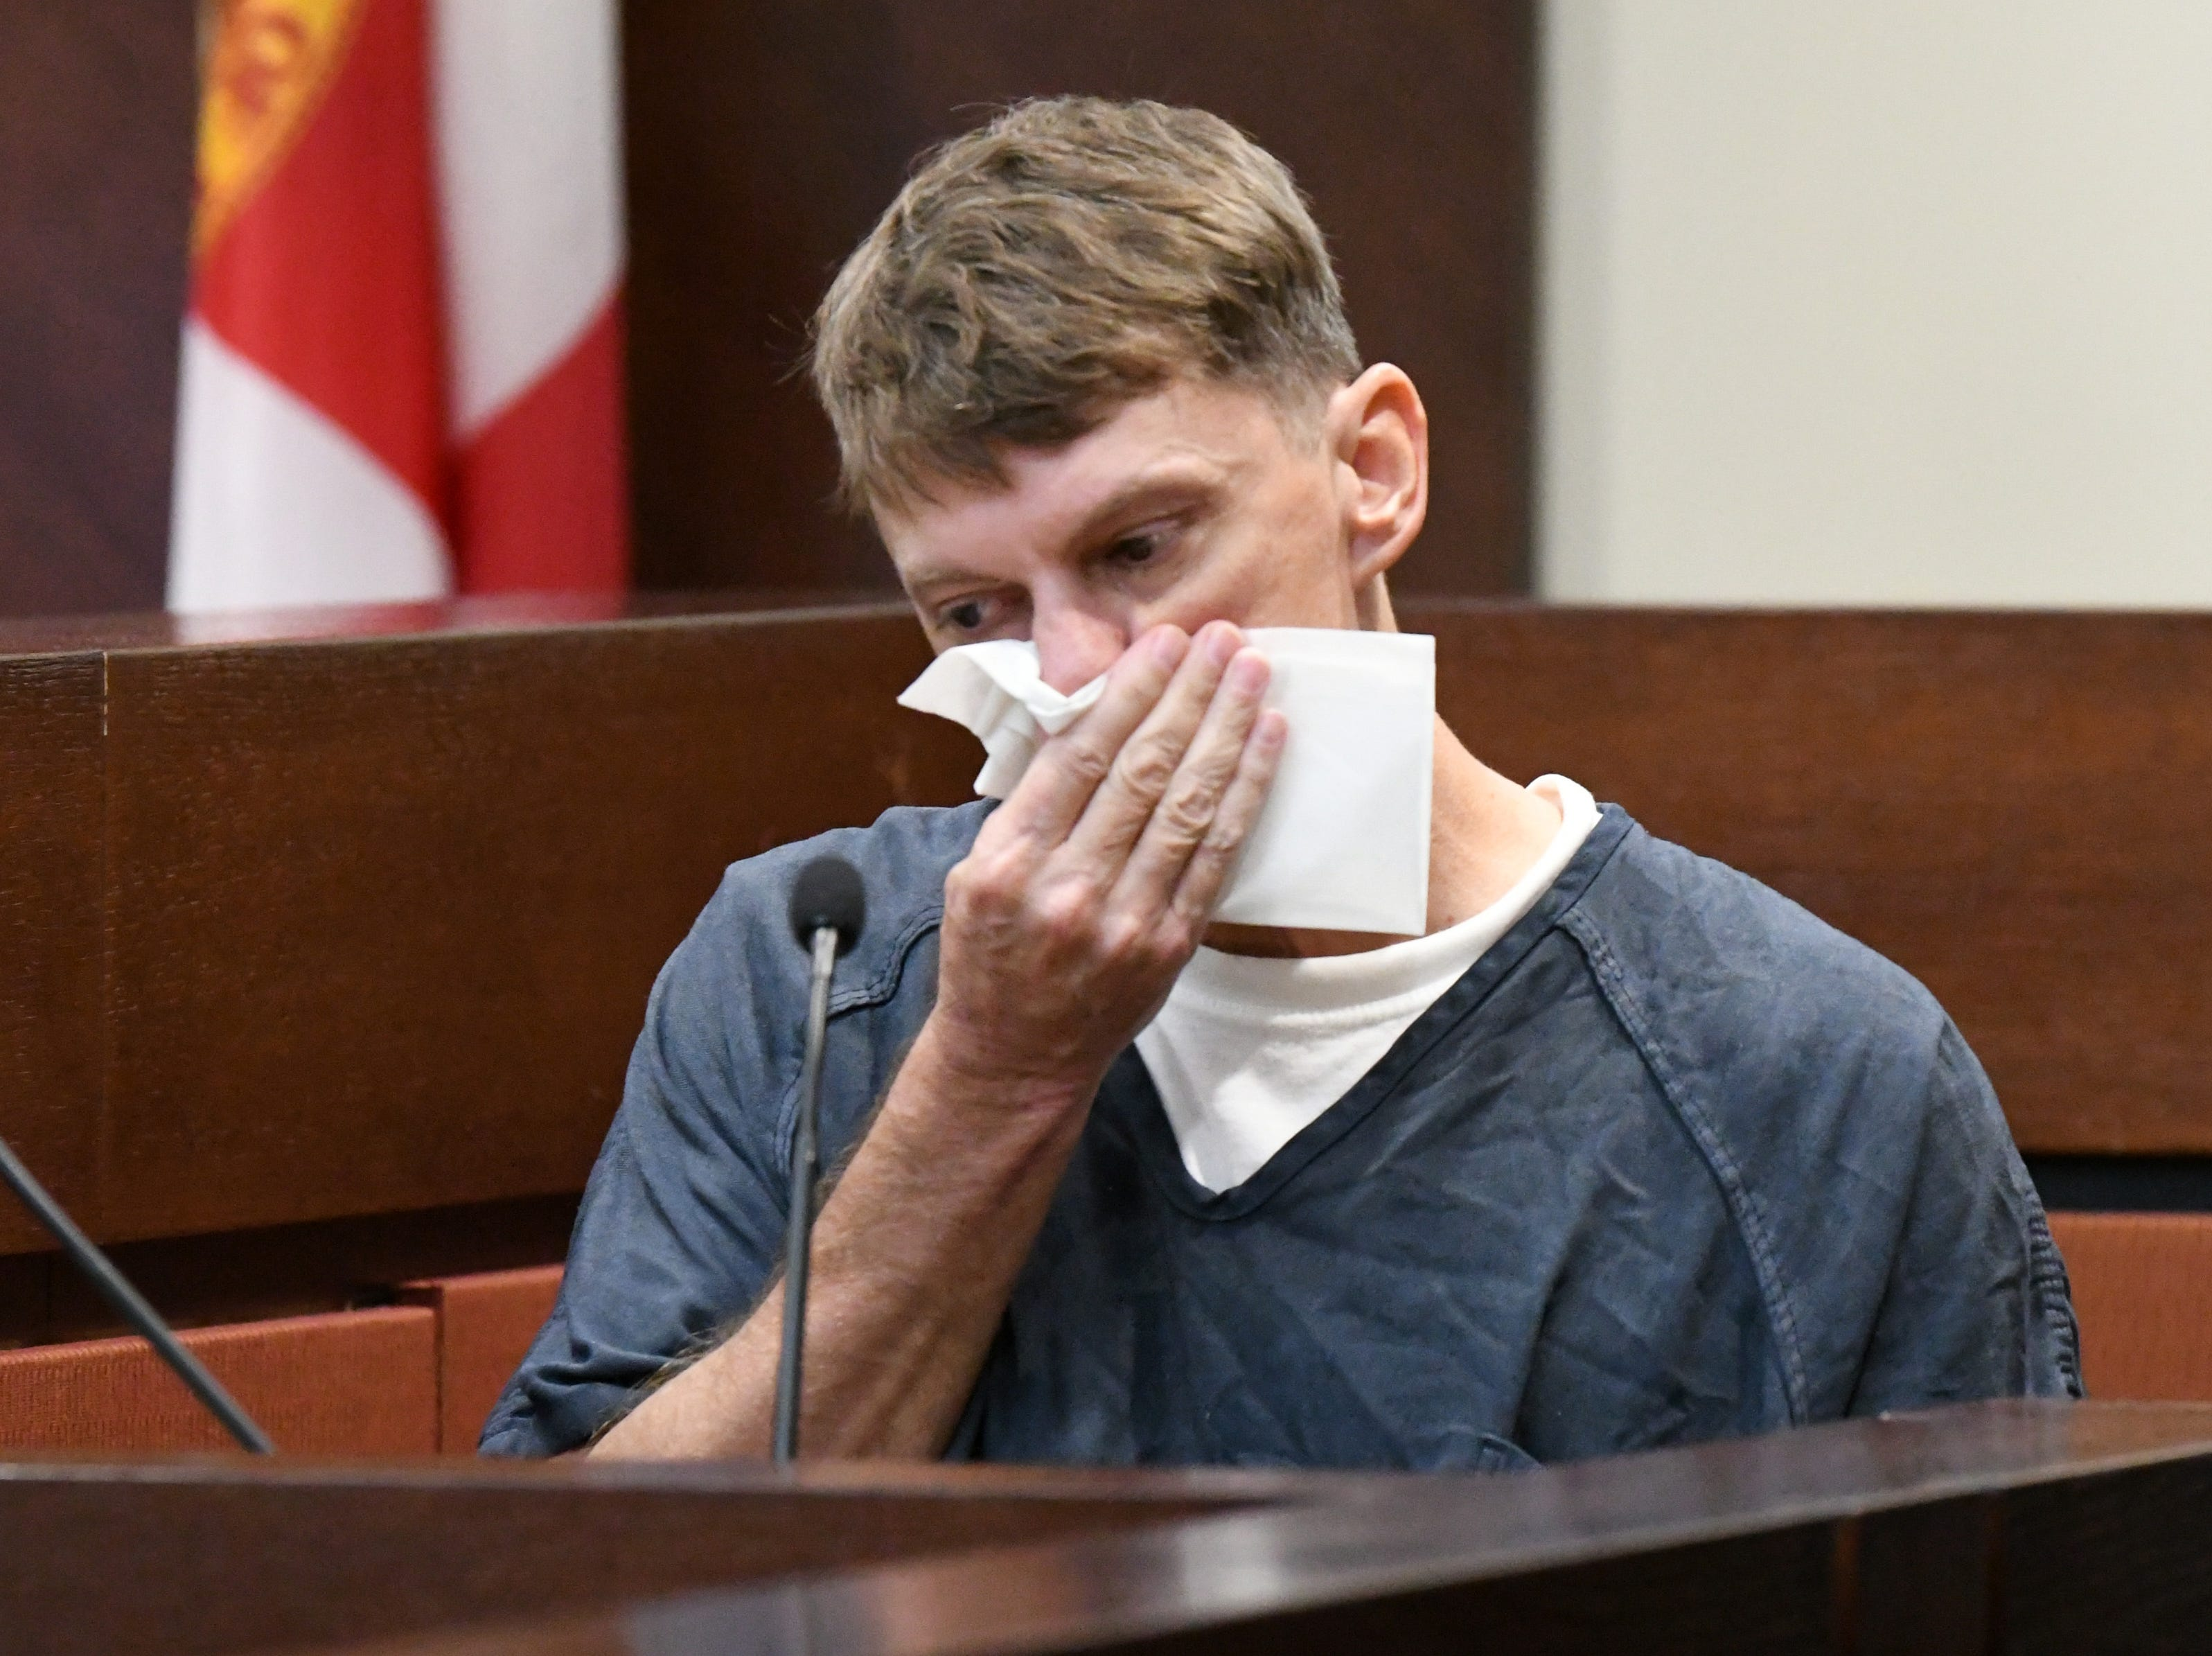 Brian Winchester, the man who confessed to pushing his best friend overboard a boat, then shooting and killing Mike Williams, wipes away tears as he speaks about what occurred on Dec. 16, 2018. He was called by the prosecution team to be a witness in the trial against Denise Williams, Mike Williams former wife, Wednesday, Dec. 12, 2018.